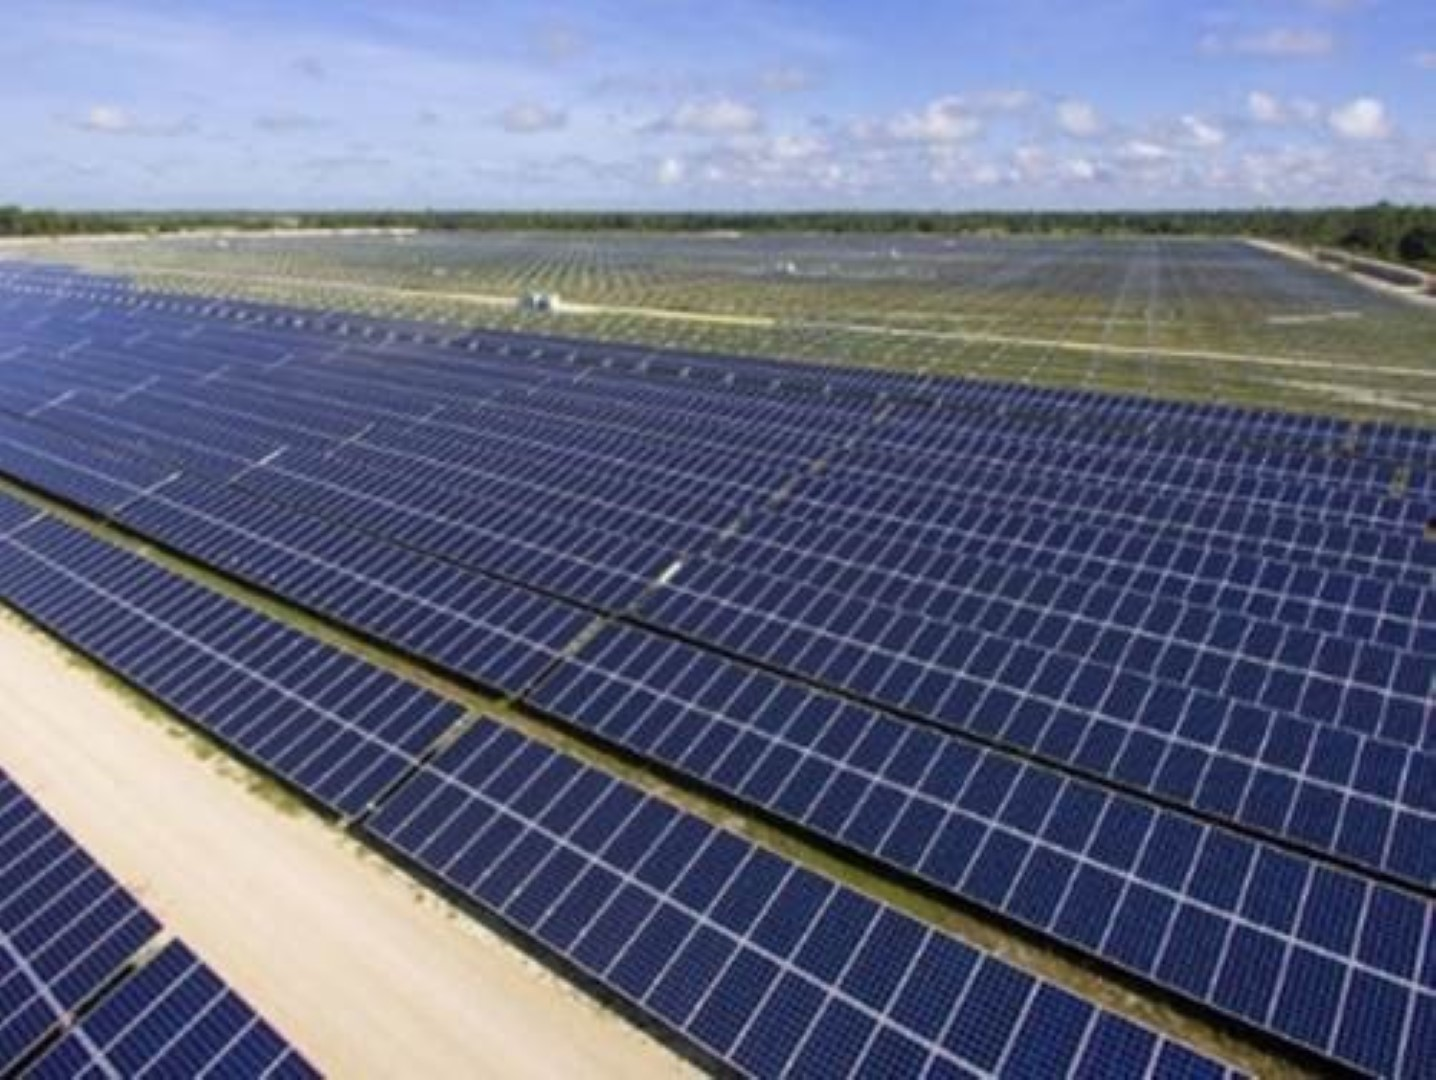 FPL To Build 8 New Florida Solar Energy Plants, Add 2.5M Panels By 2018    Florida Politics Nice Look